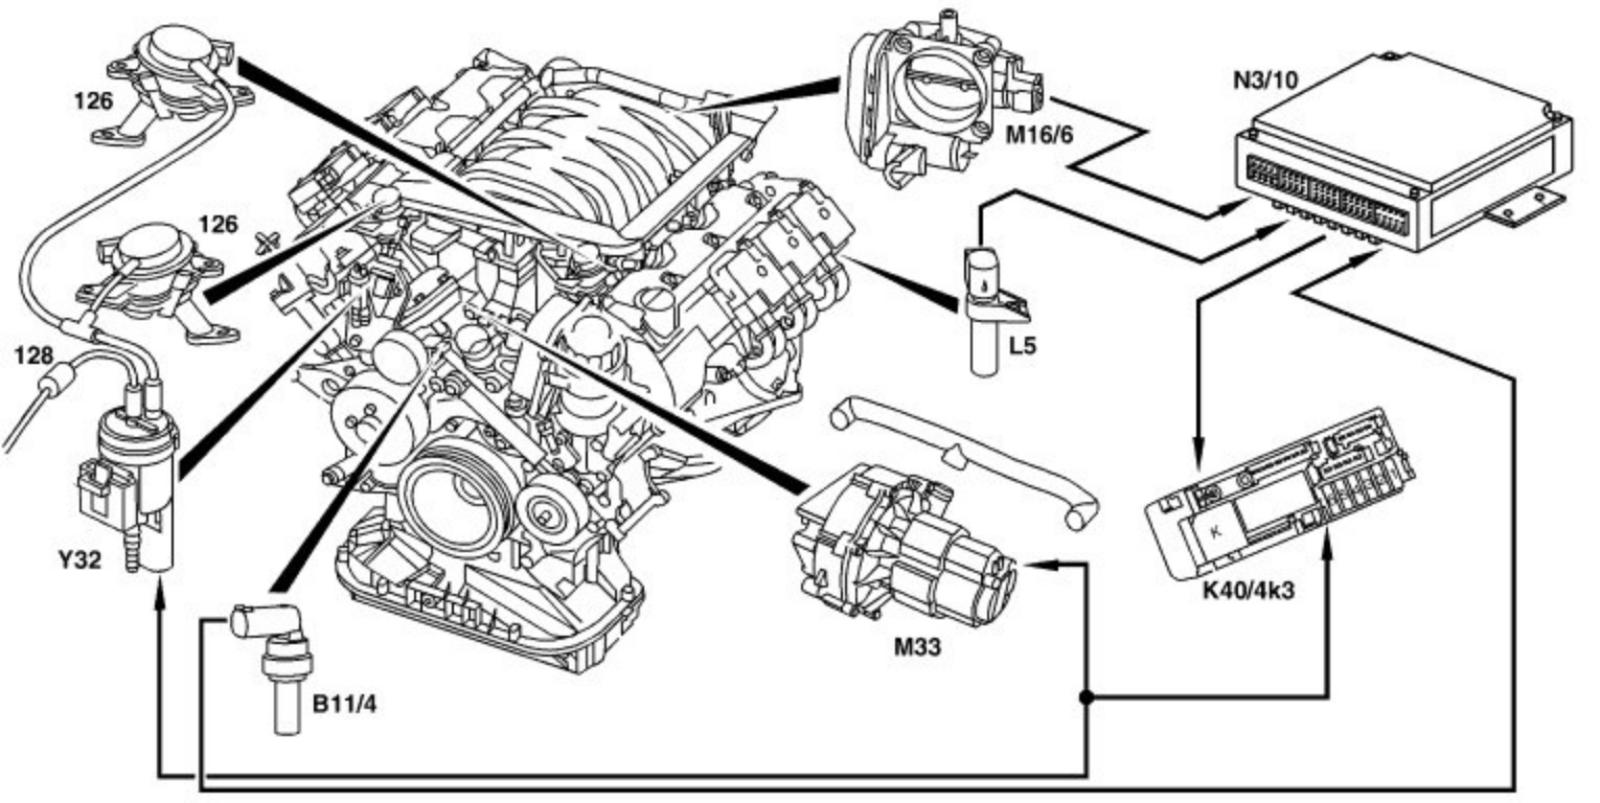 mercedes benz c320 engine diagram  mercedes  free engine